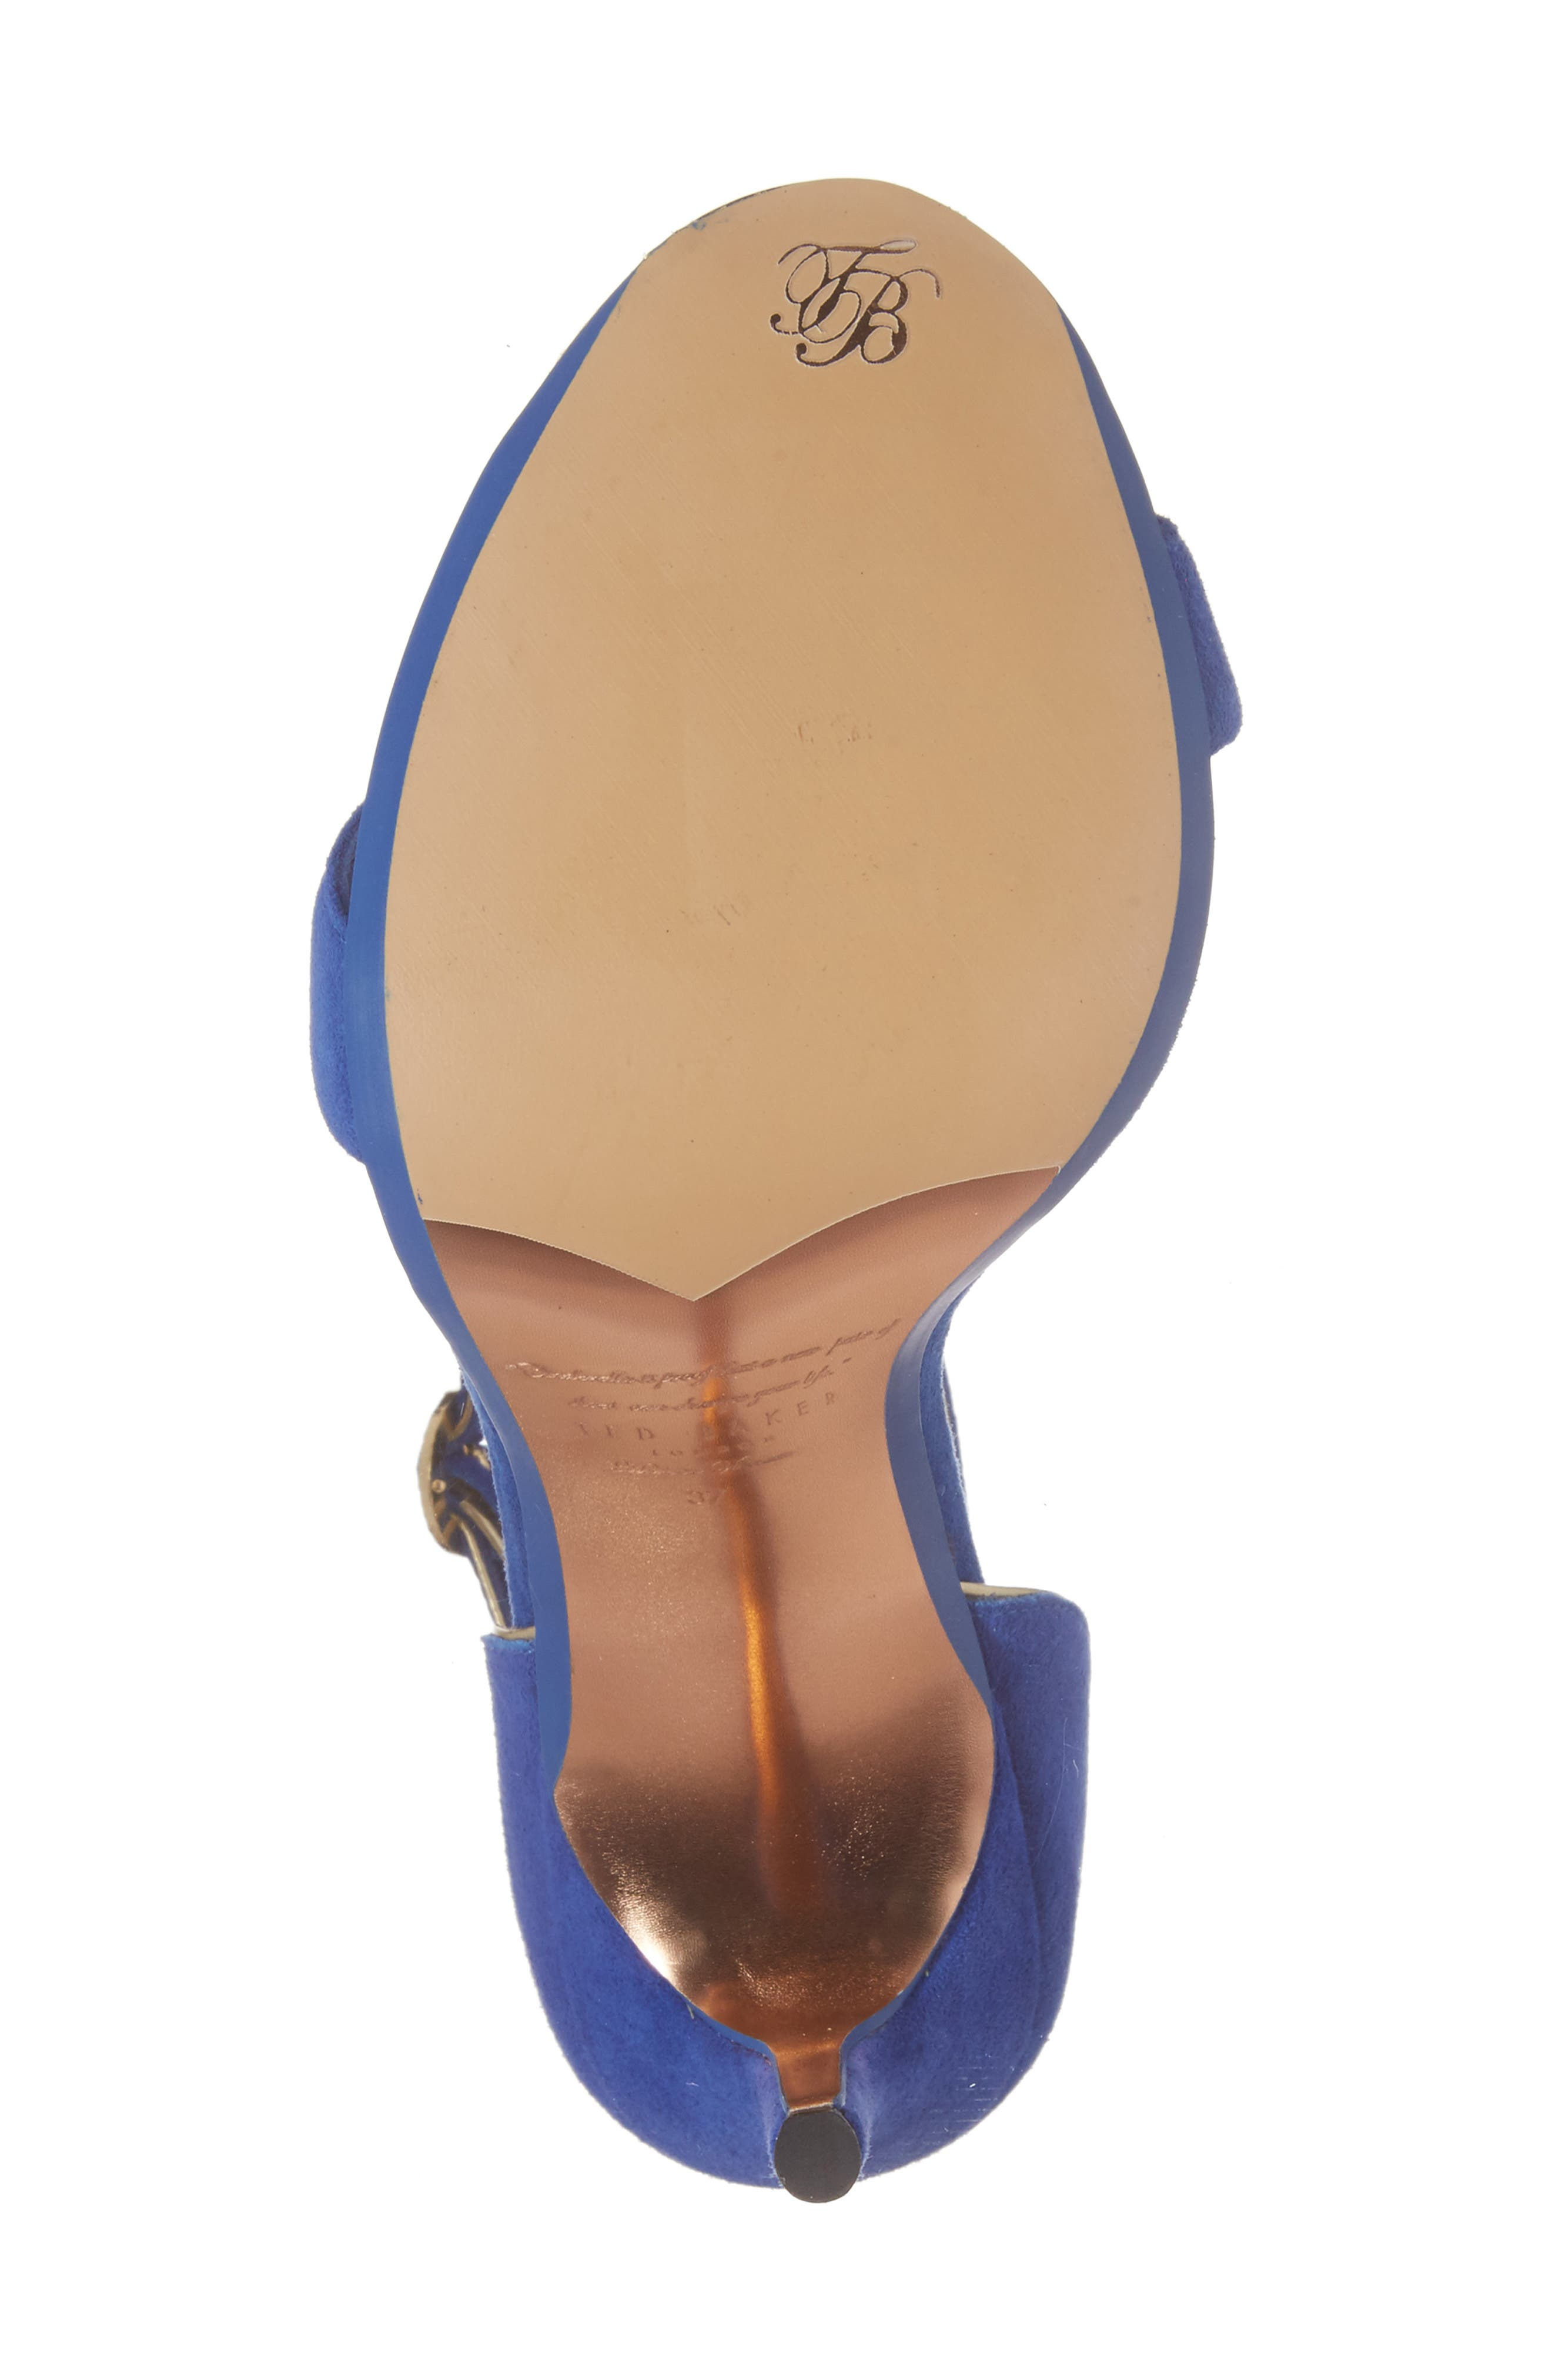 Mirobell Ankle Strap Sandal,                             Alternate thumbnail 6, color,                             Blue Suede